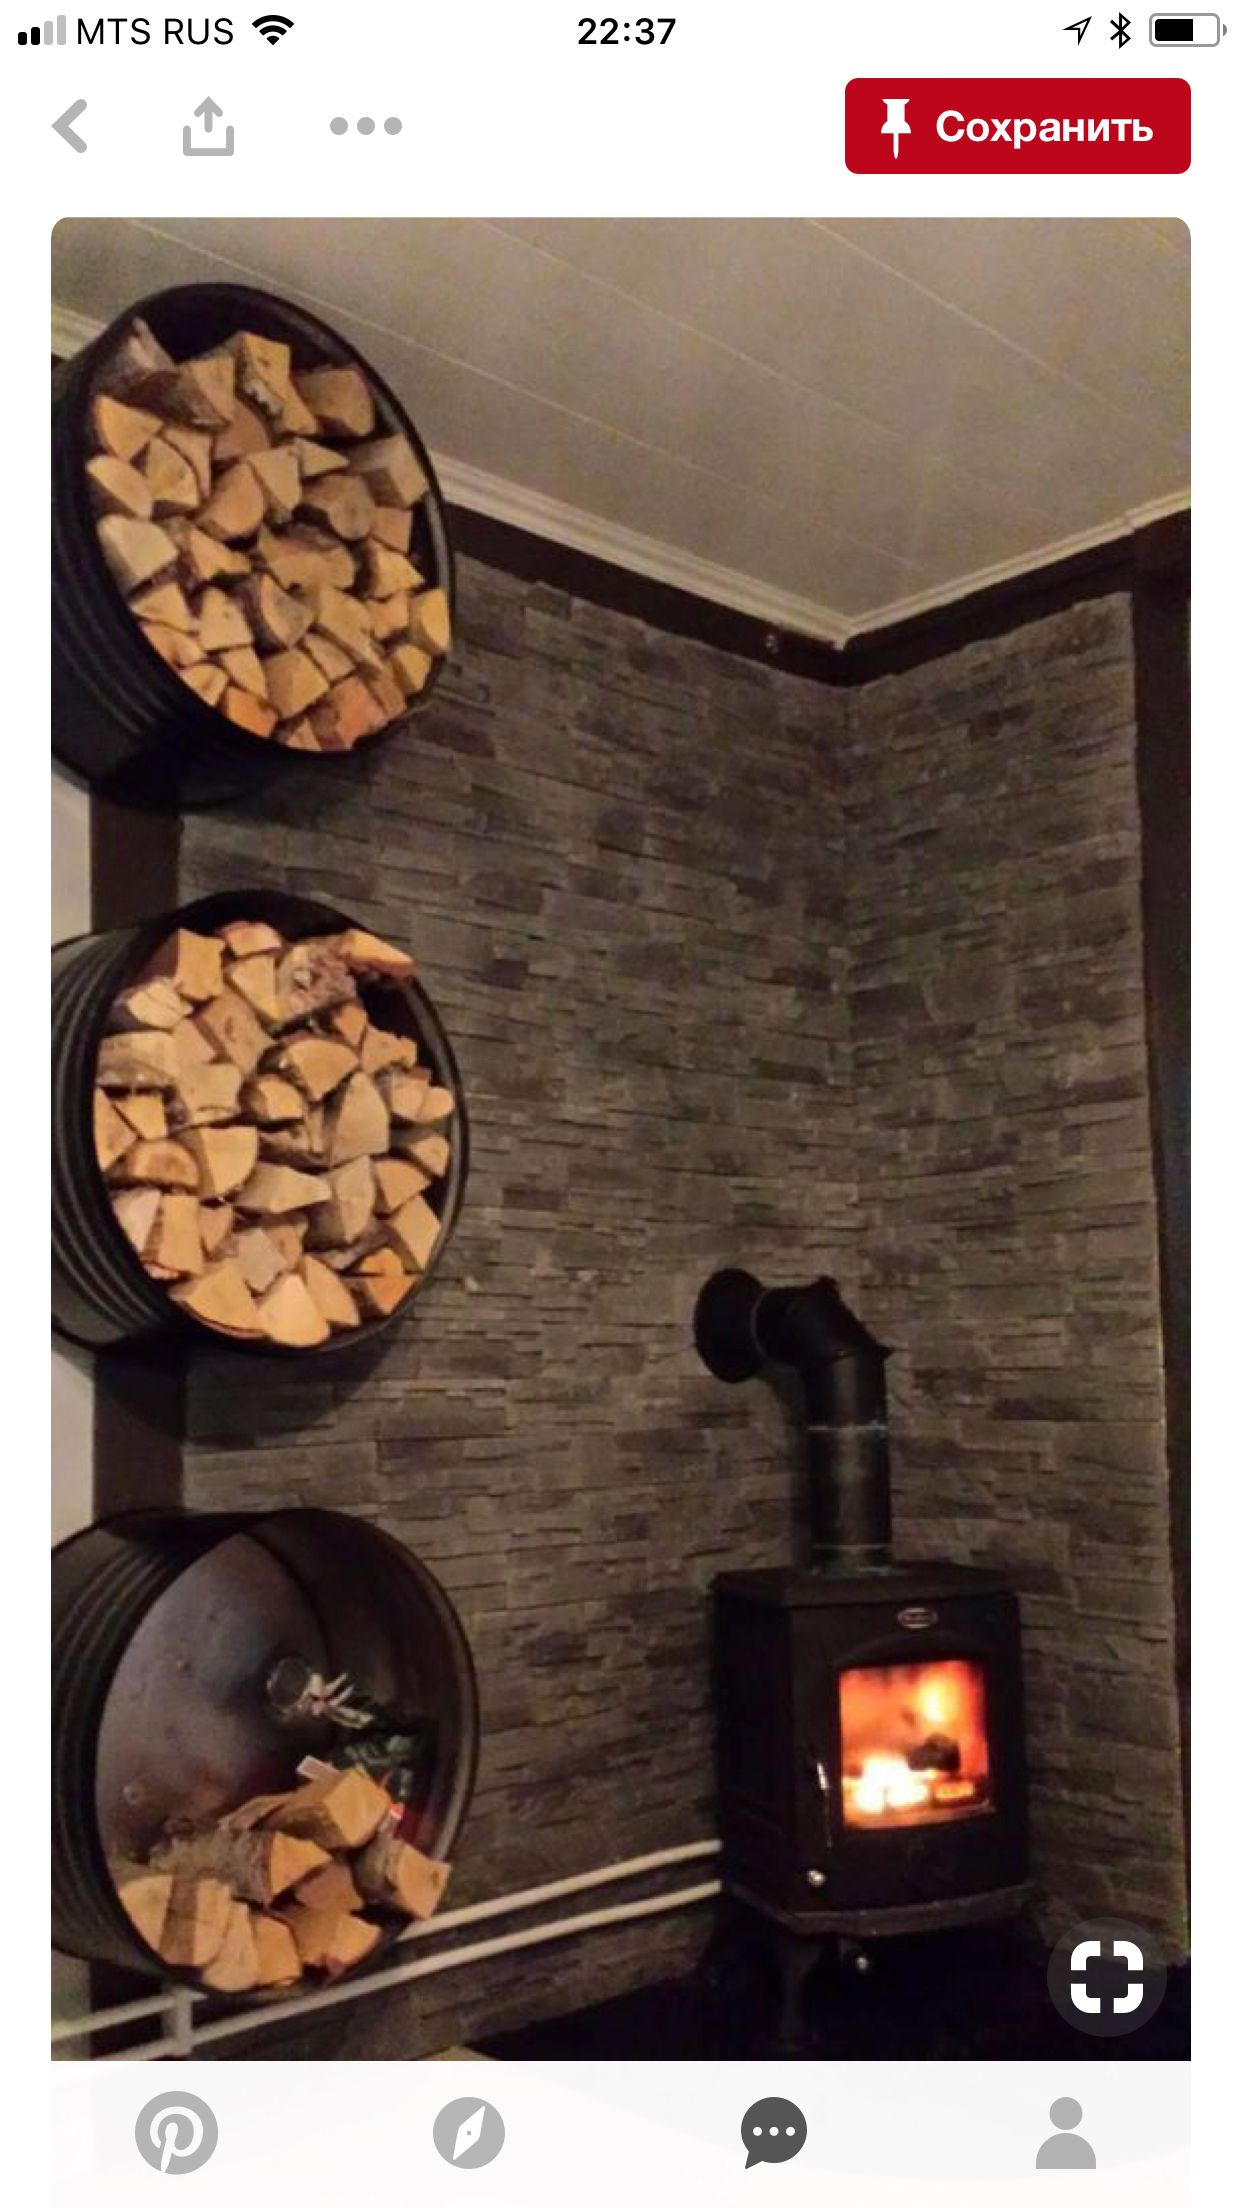 Get More Hearth Heating Tips From Our Fireplace Experts At Www Burlingtonfireplace Outdoor Wood Burning Fireplace Wood Stove Fireplace Wood Stove Surround